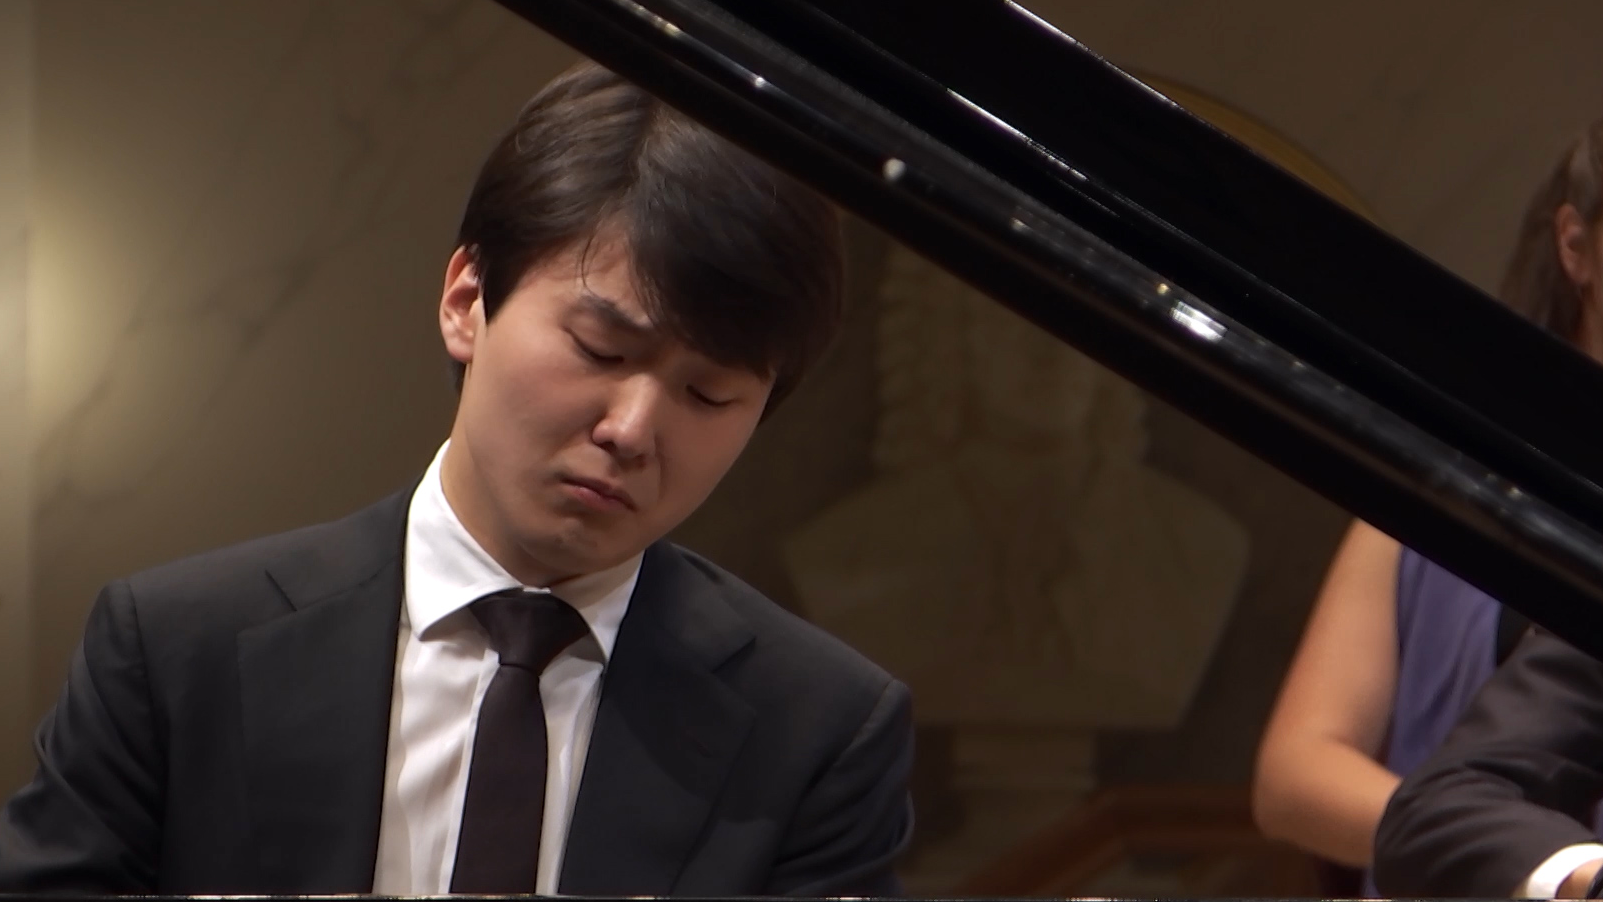 Gianandrea Noseda conducts Rachmaninov, Balakirev, and Shostakovich – With Seong-Jin Cho